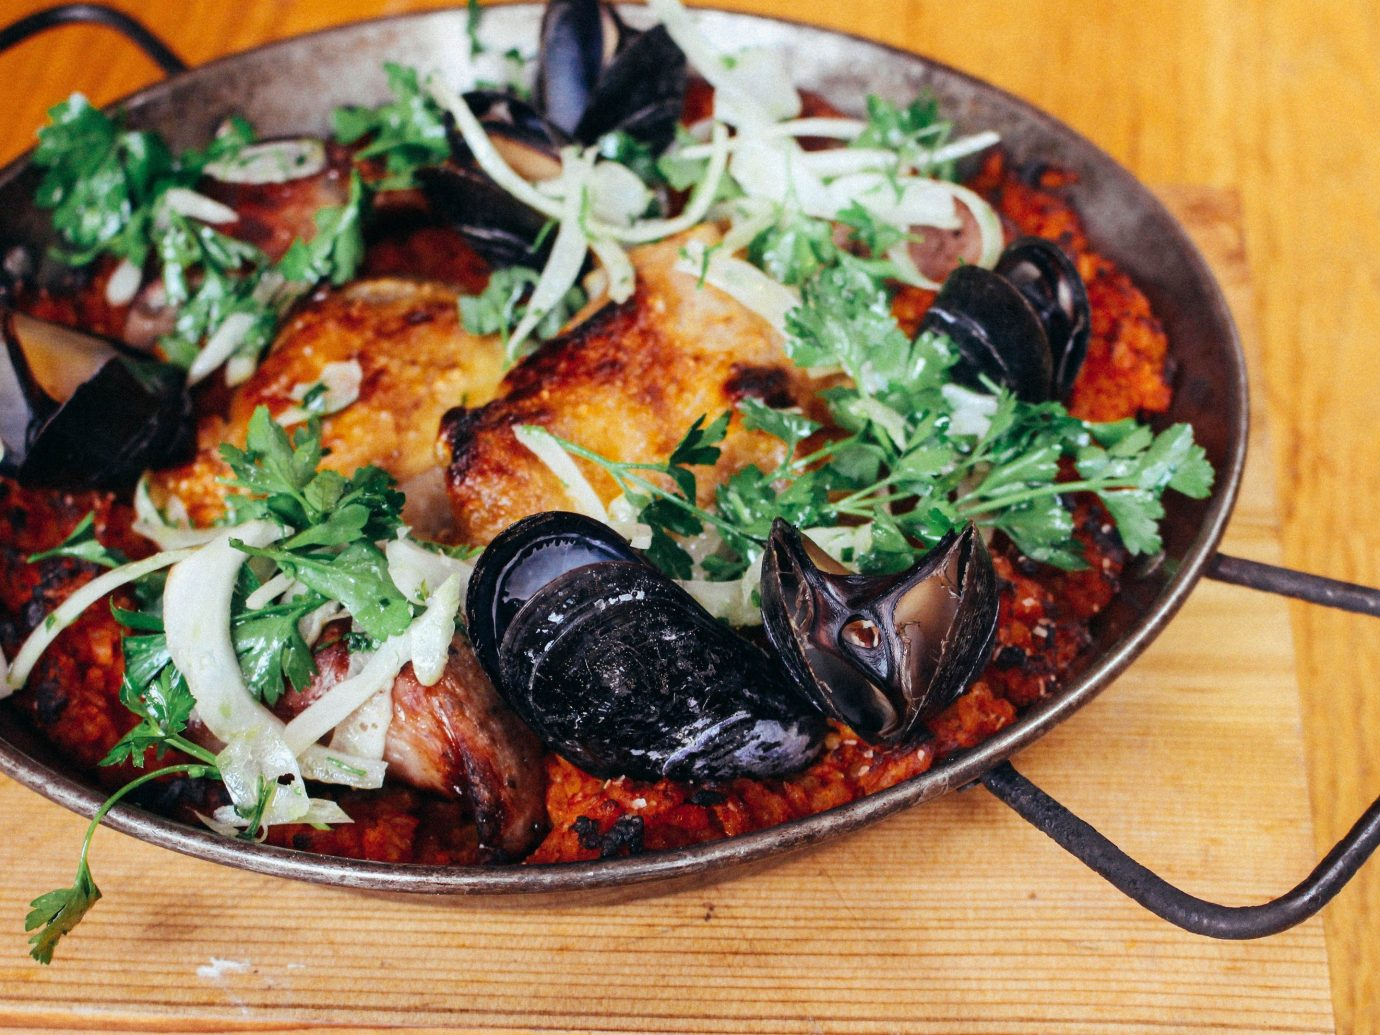 Food + Drink dish food cuisine produce fish vegetable mussel meal different